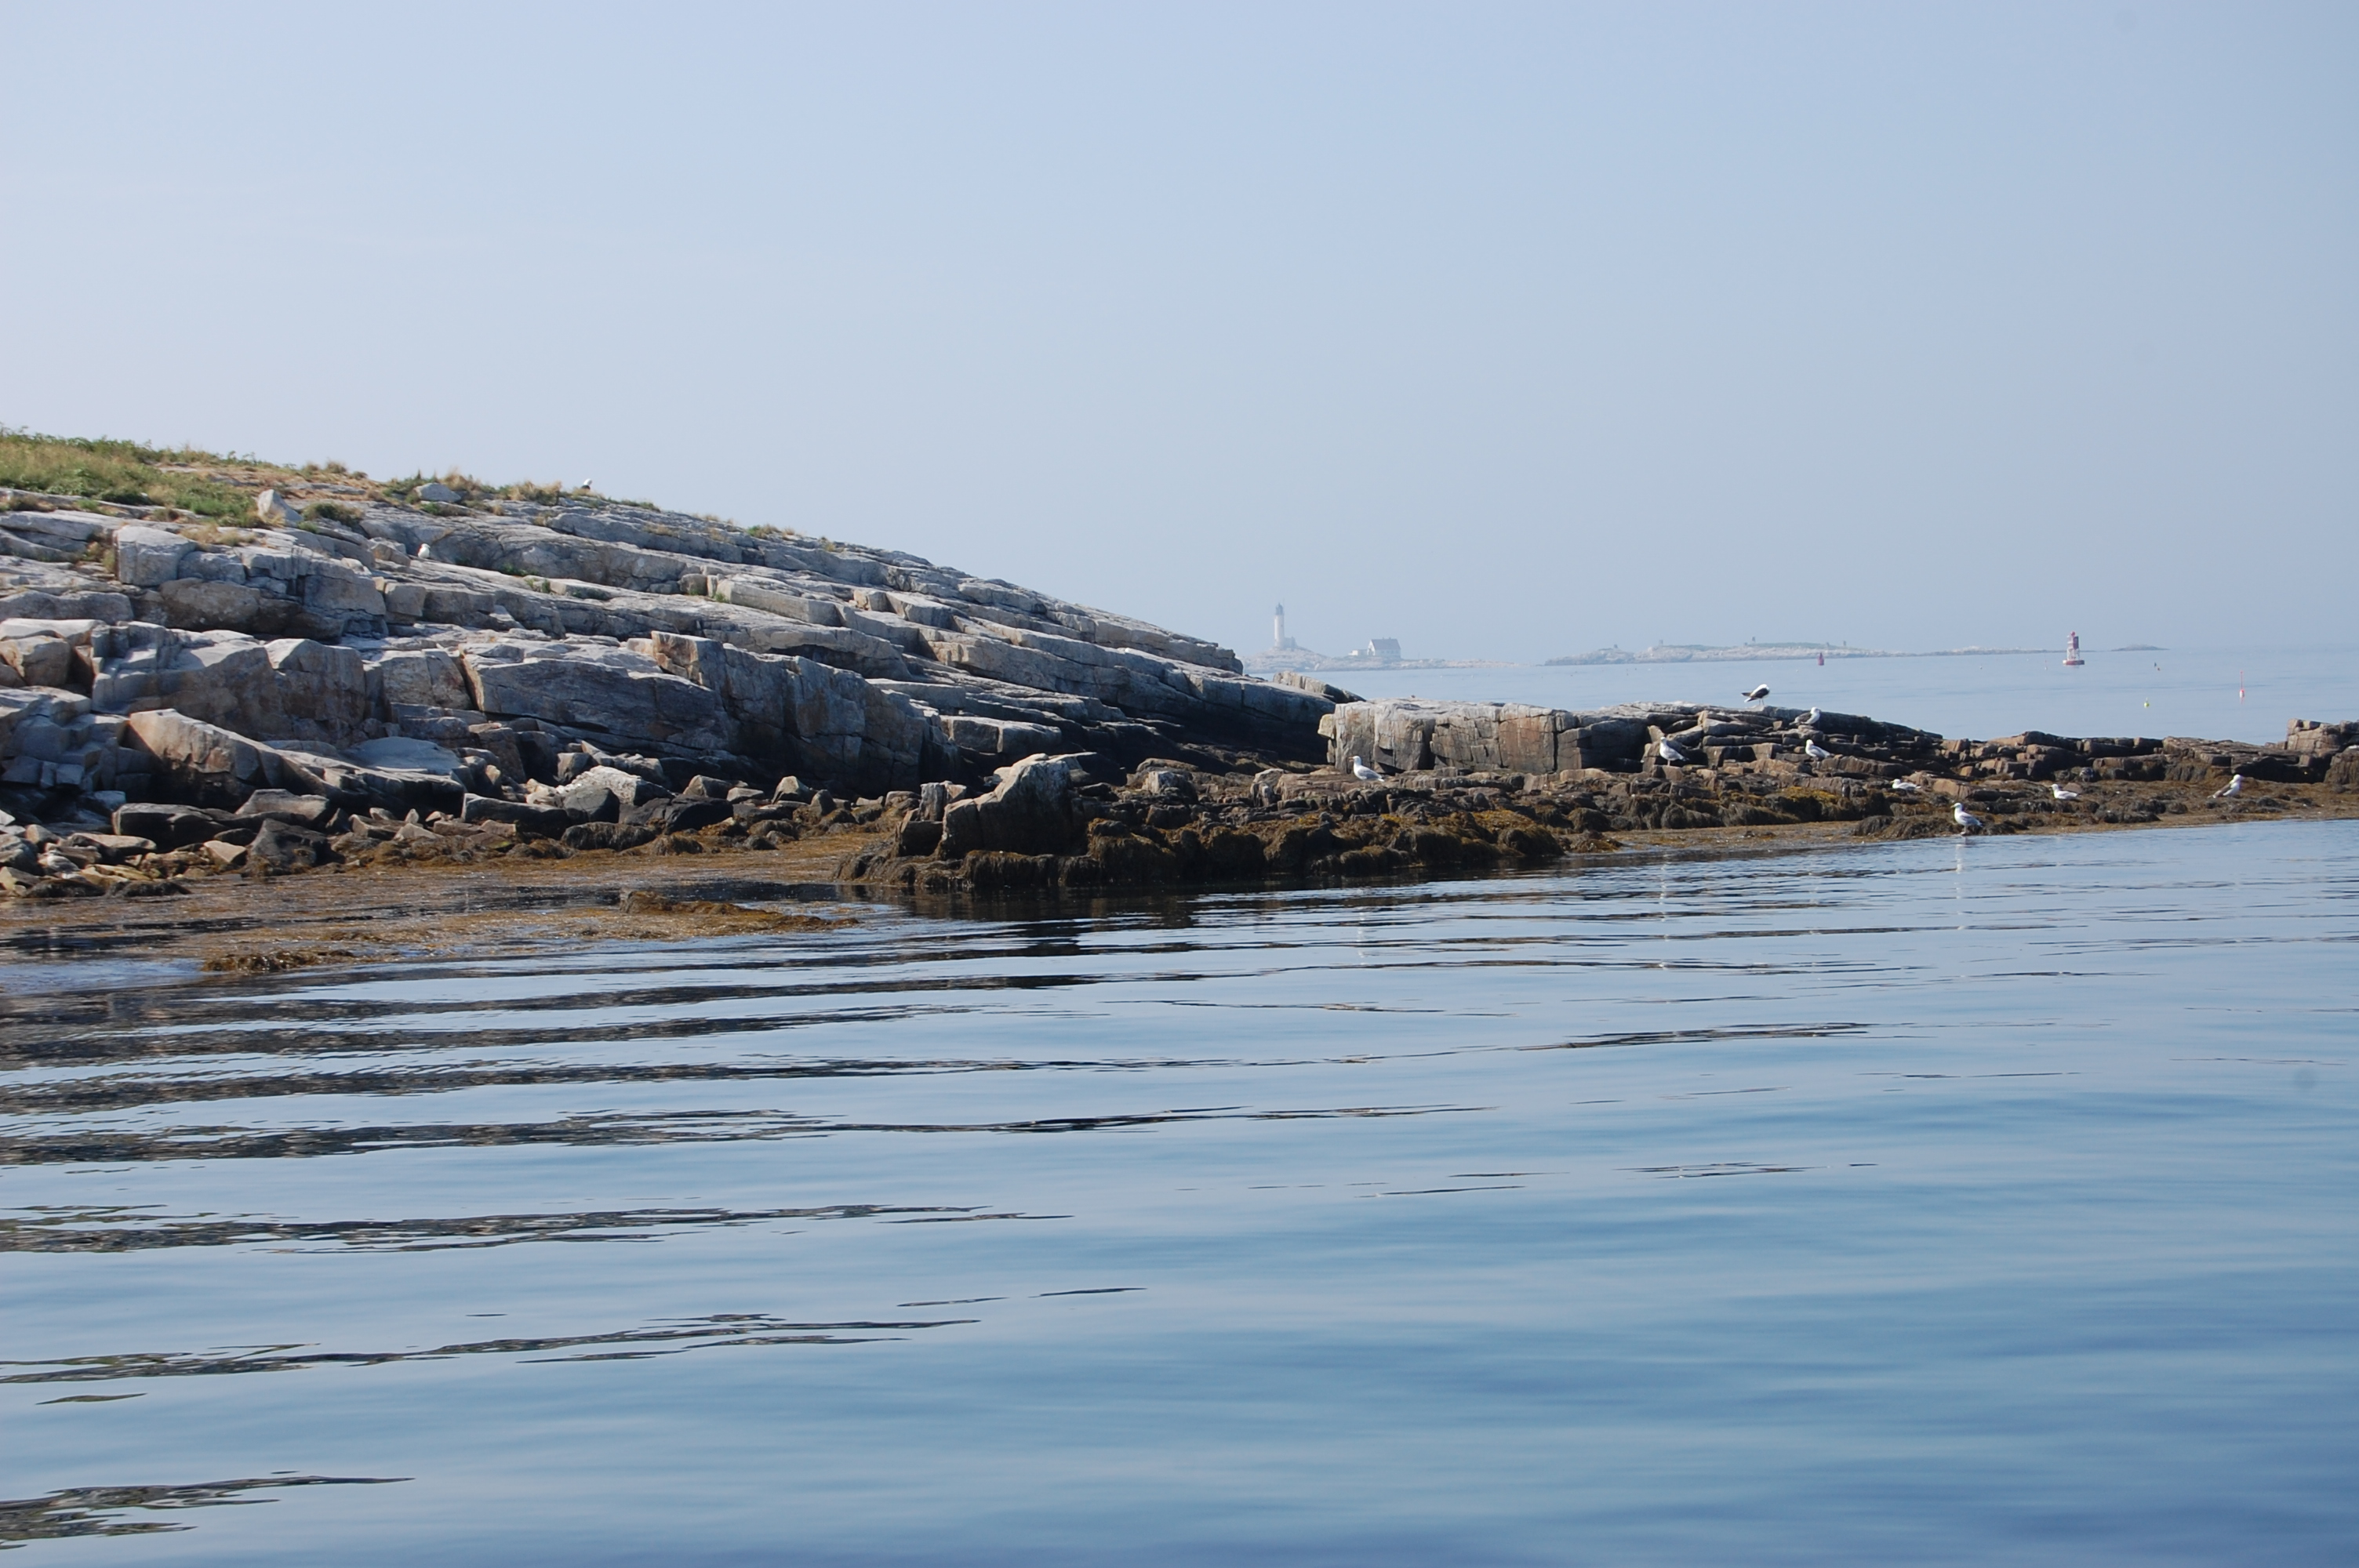 A rocky shoreline on a hazy summer day with calm seas.